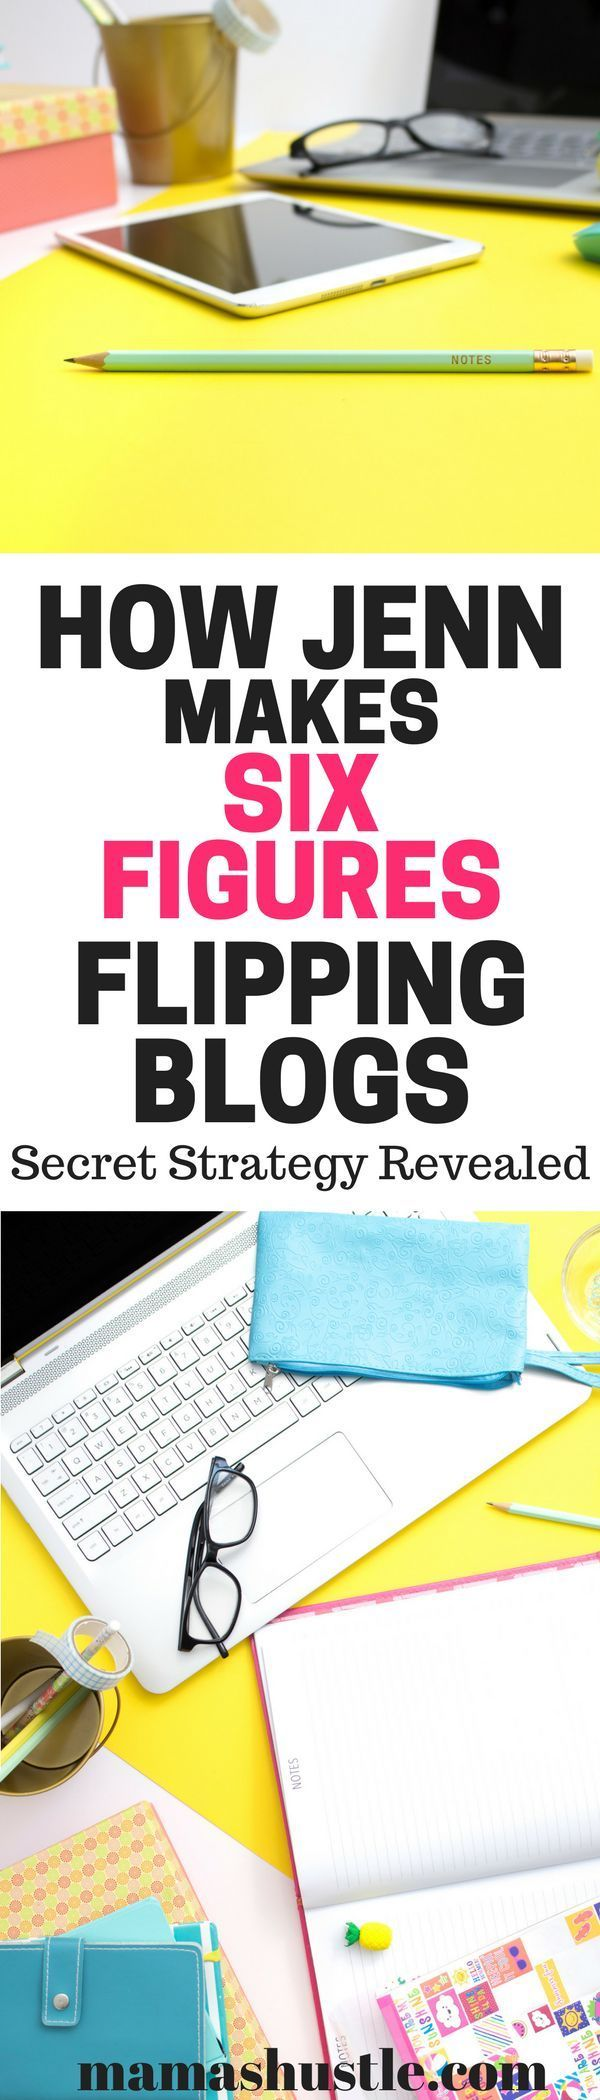 Jenn shares her secret strategy that she's used to make over six figures blog flipping! Her entire process, start to finish. Don't miss it! | mamashustle.com